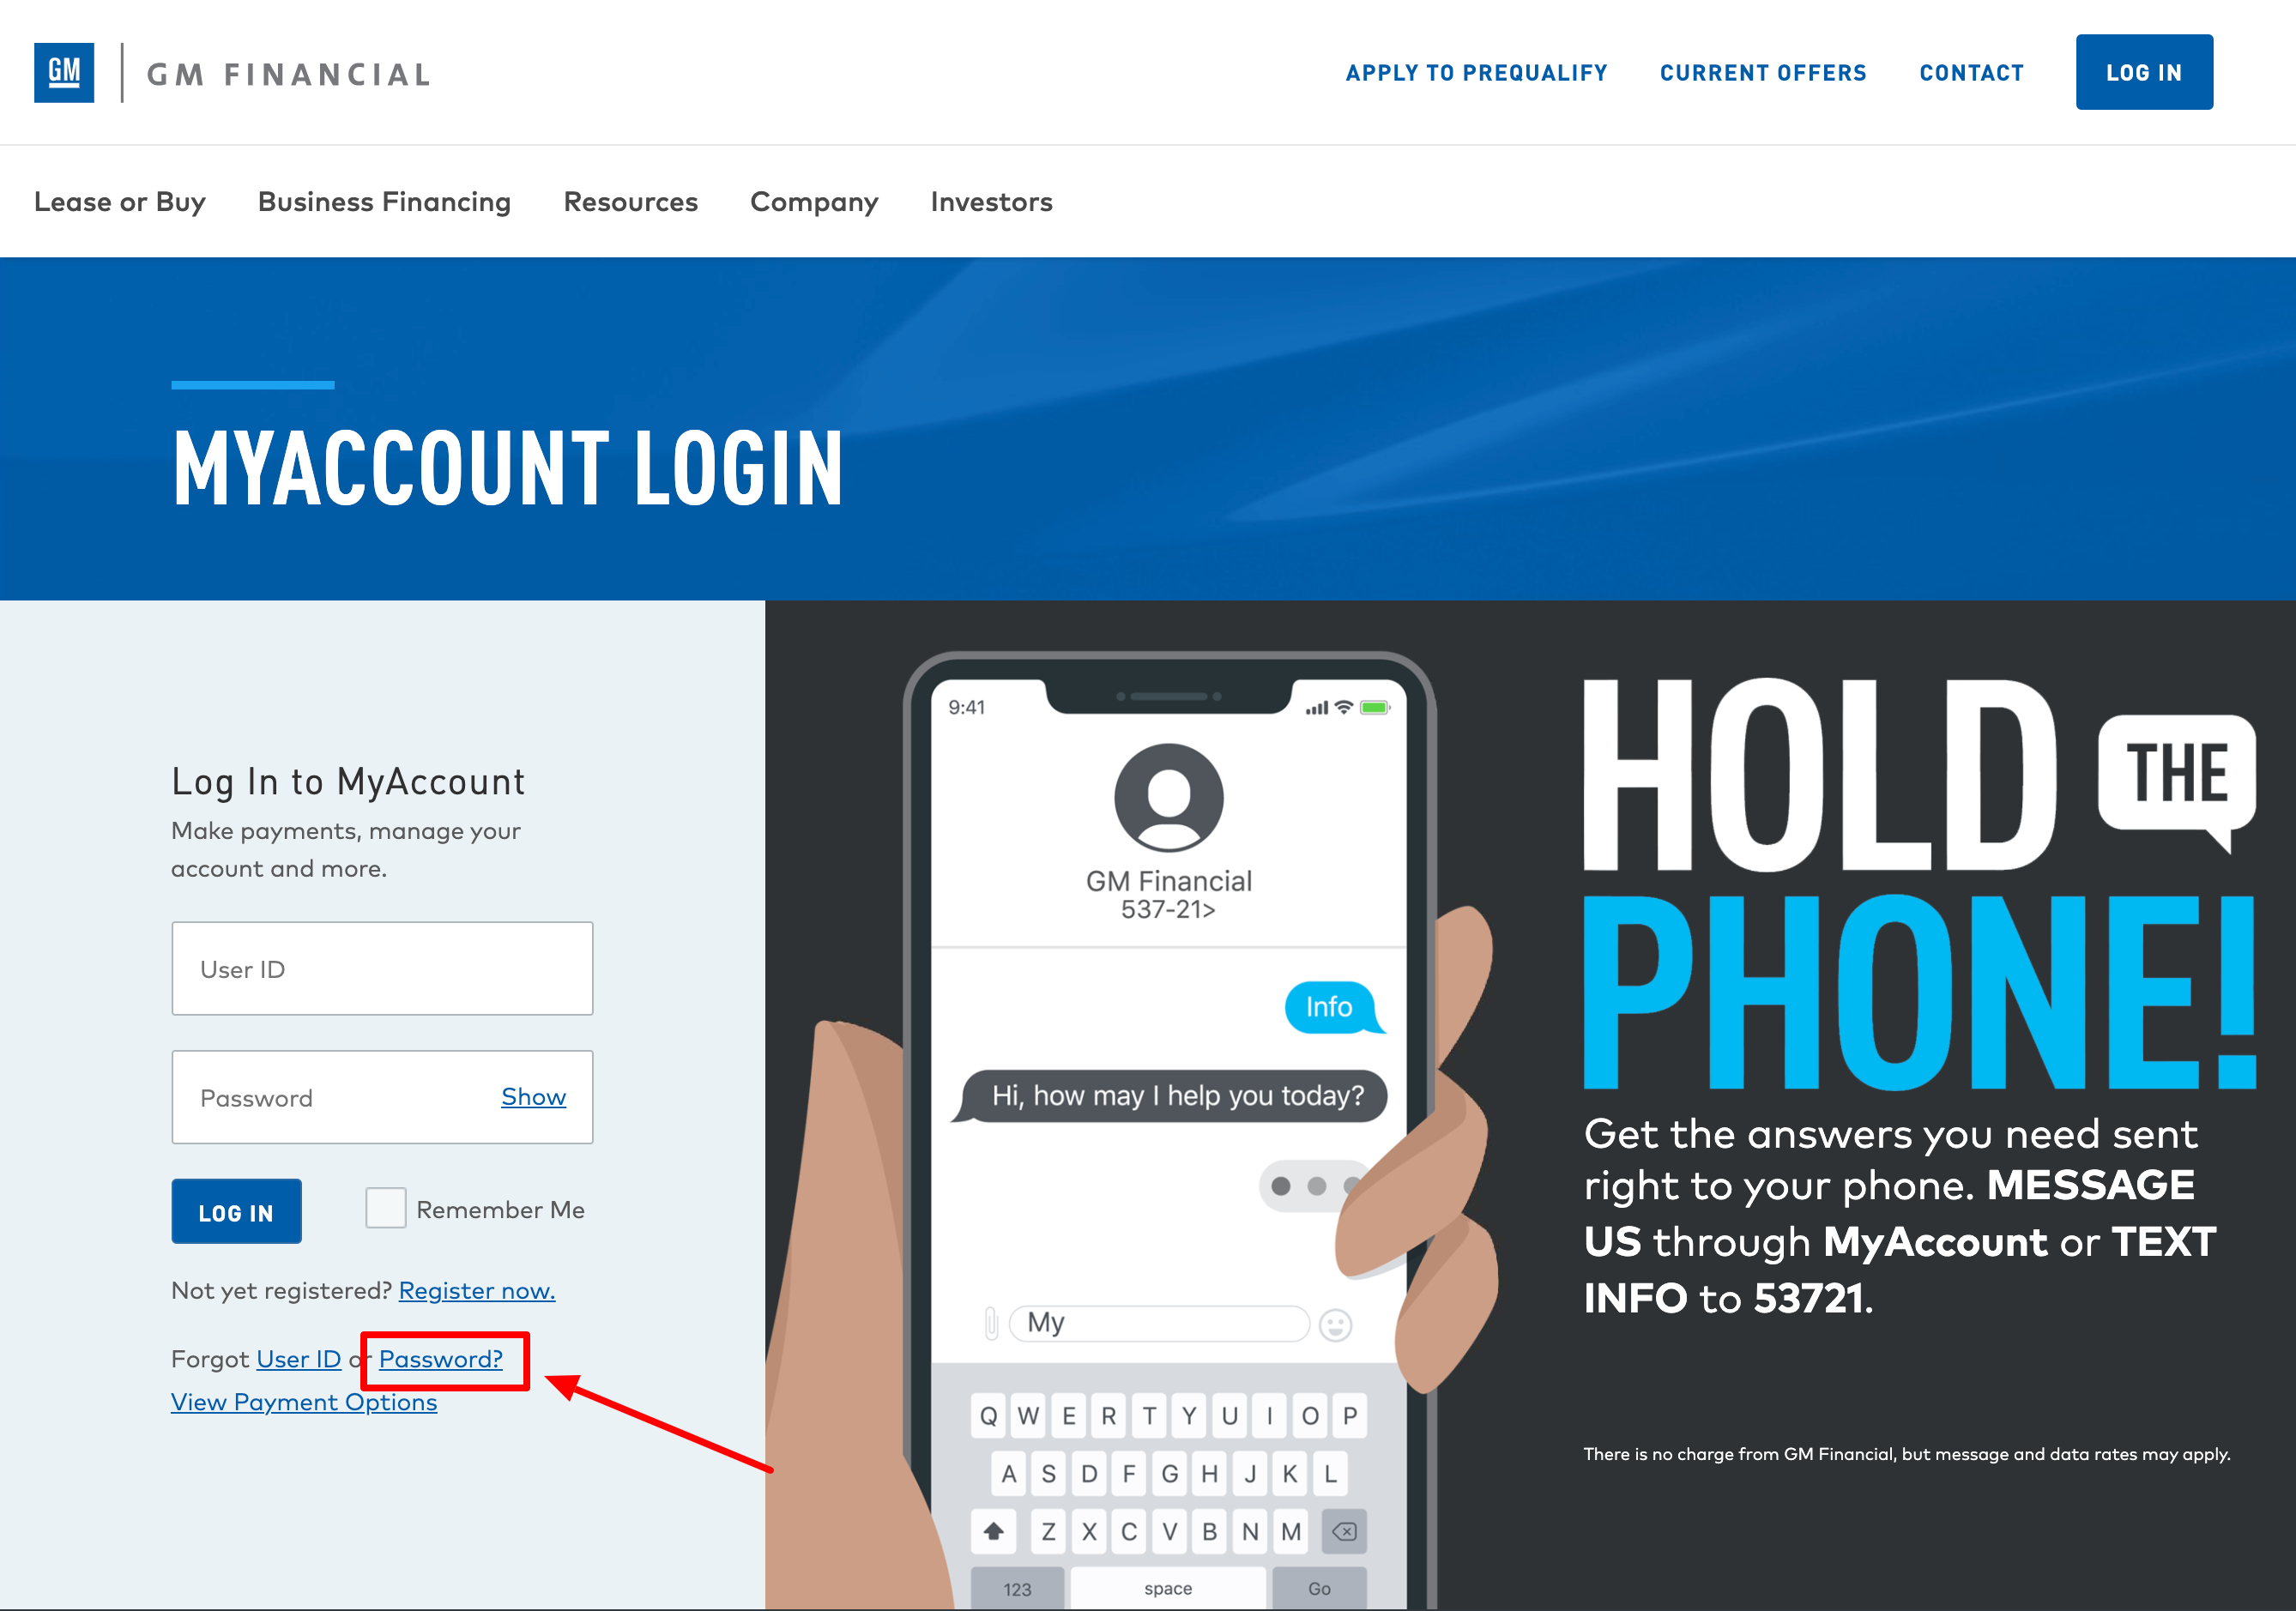 gmfinancial login